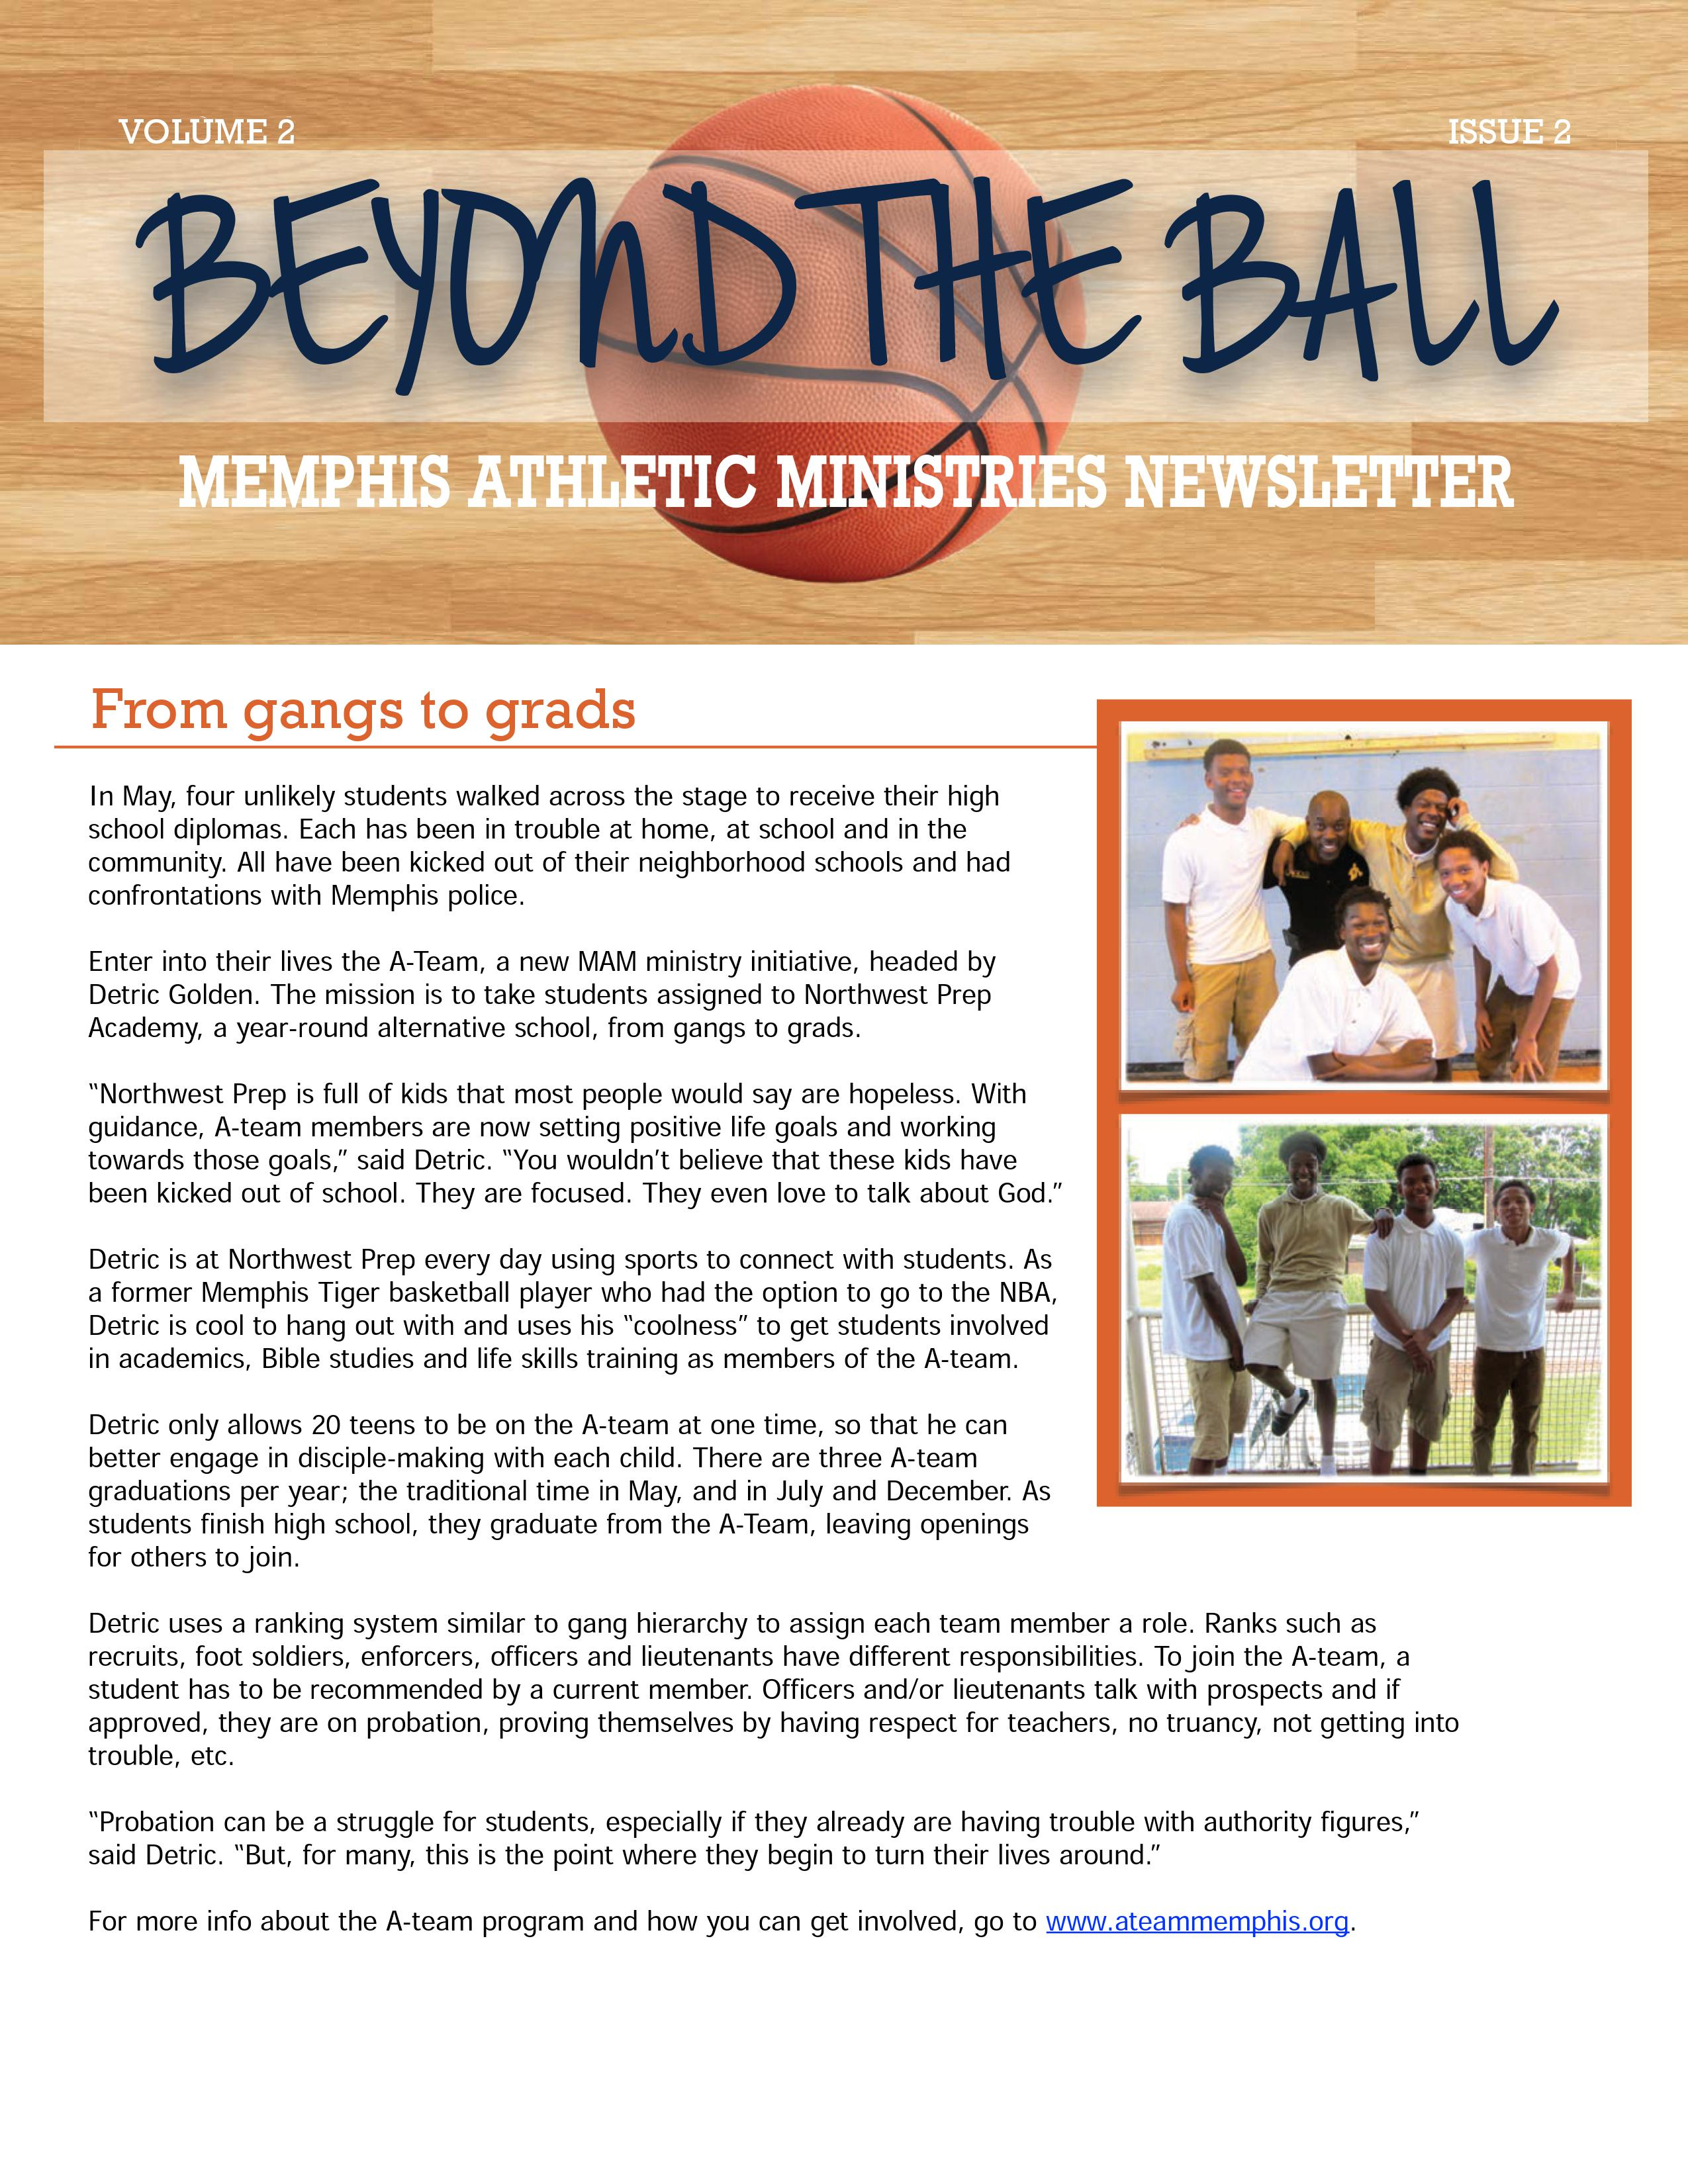 Beyond the Ball, Vol. 2, Issue 2